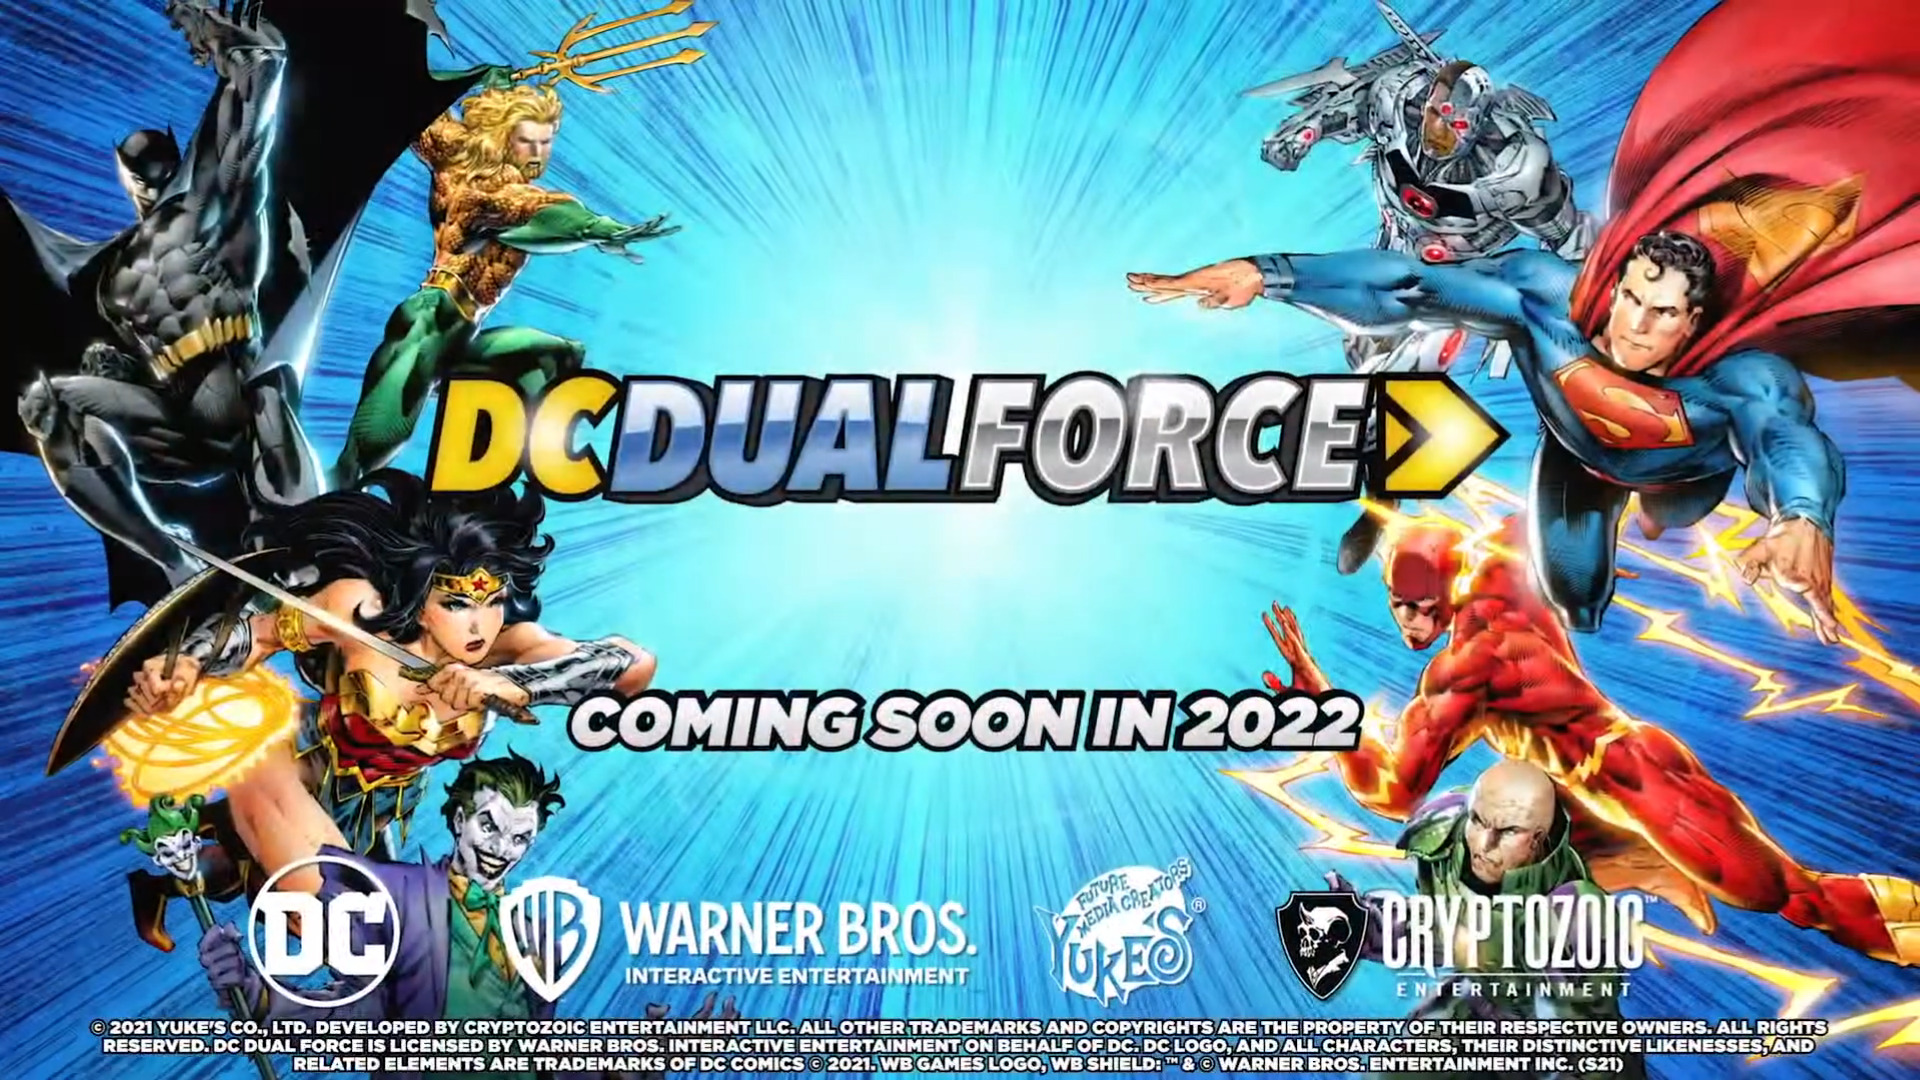 DC Dual Force Card Collectible game 2022 release